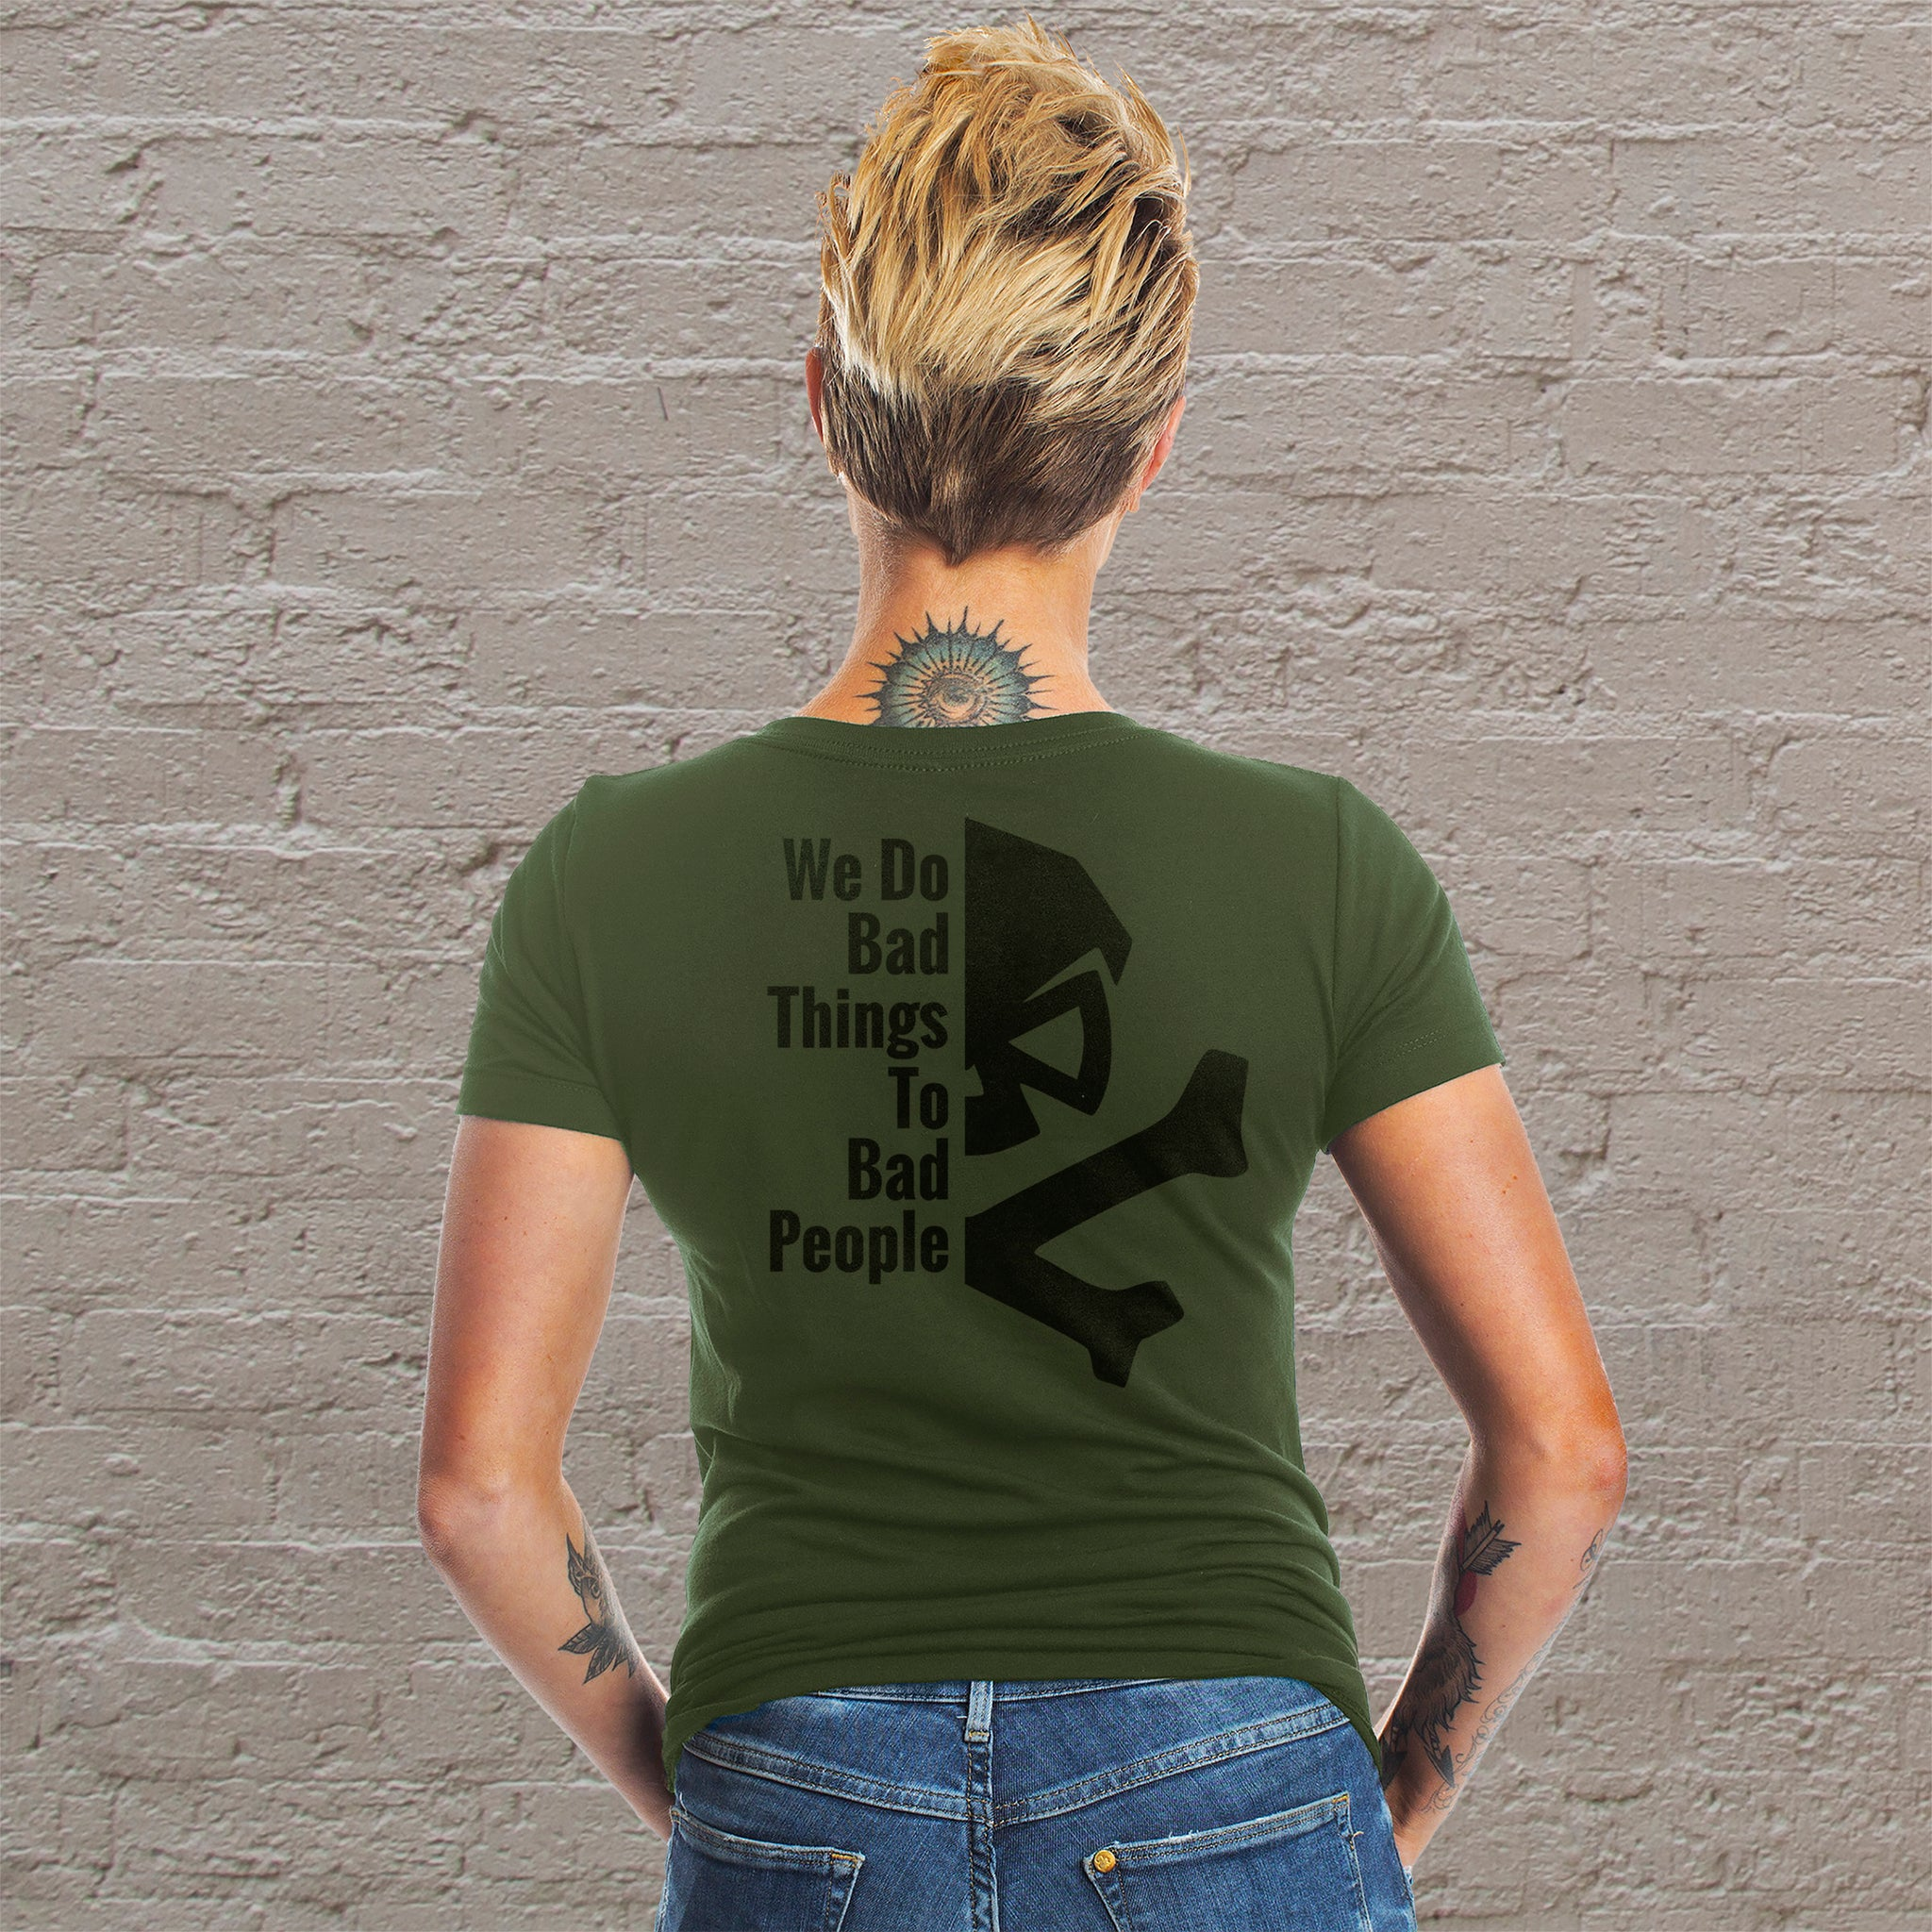 We Do Bad Things To Bad People - Military Green - T-Shirts - Pipe Hitters Union